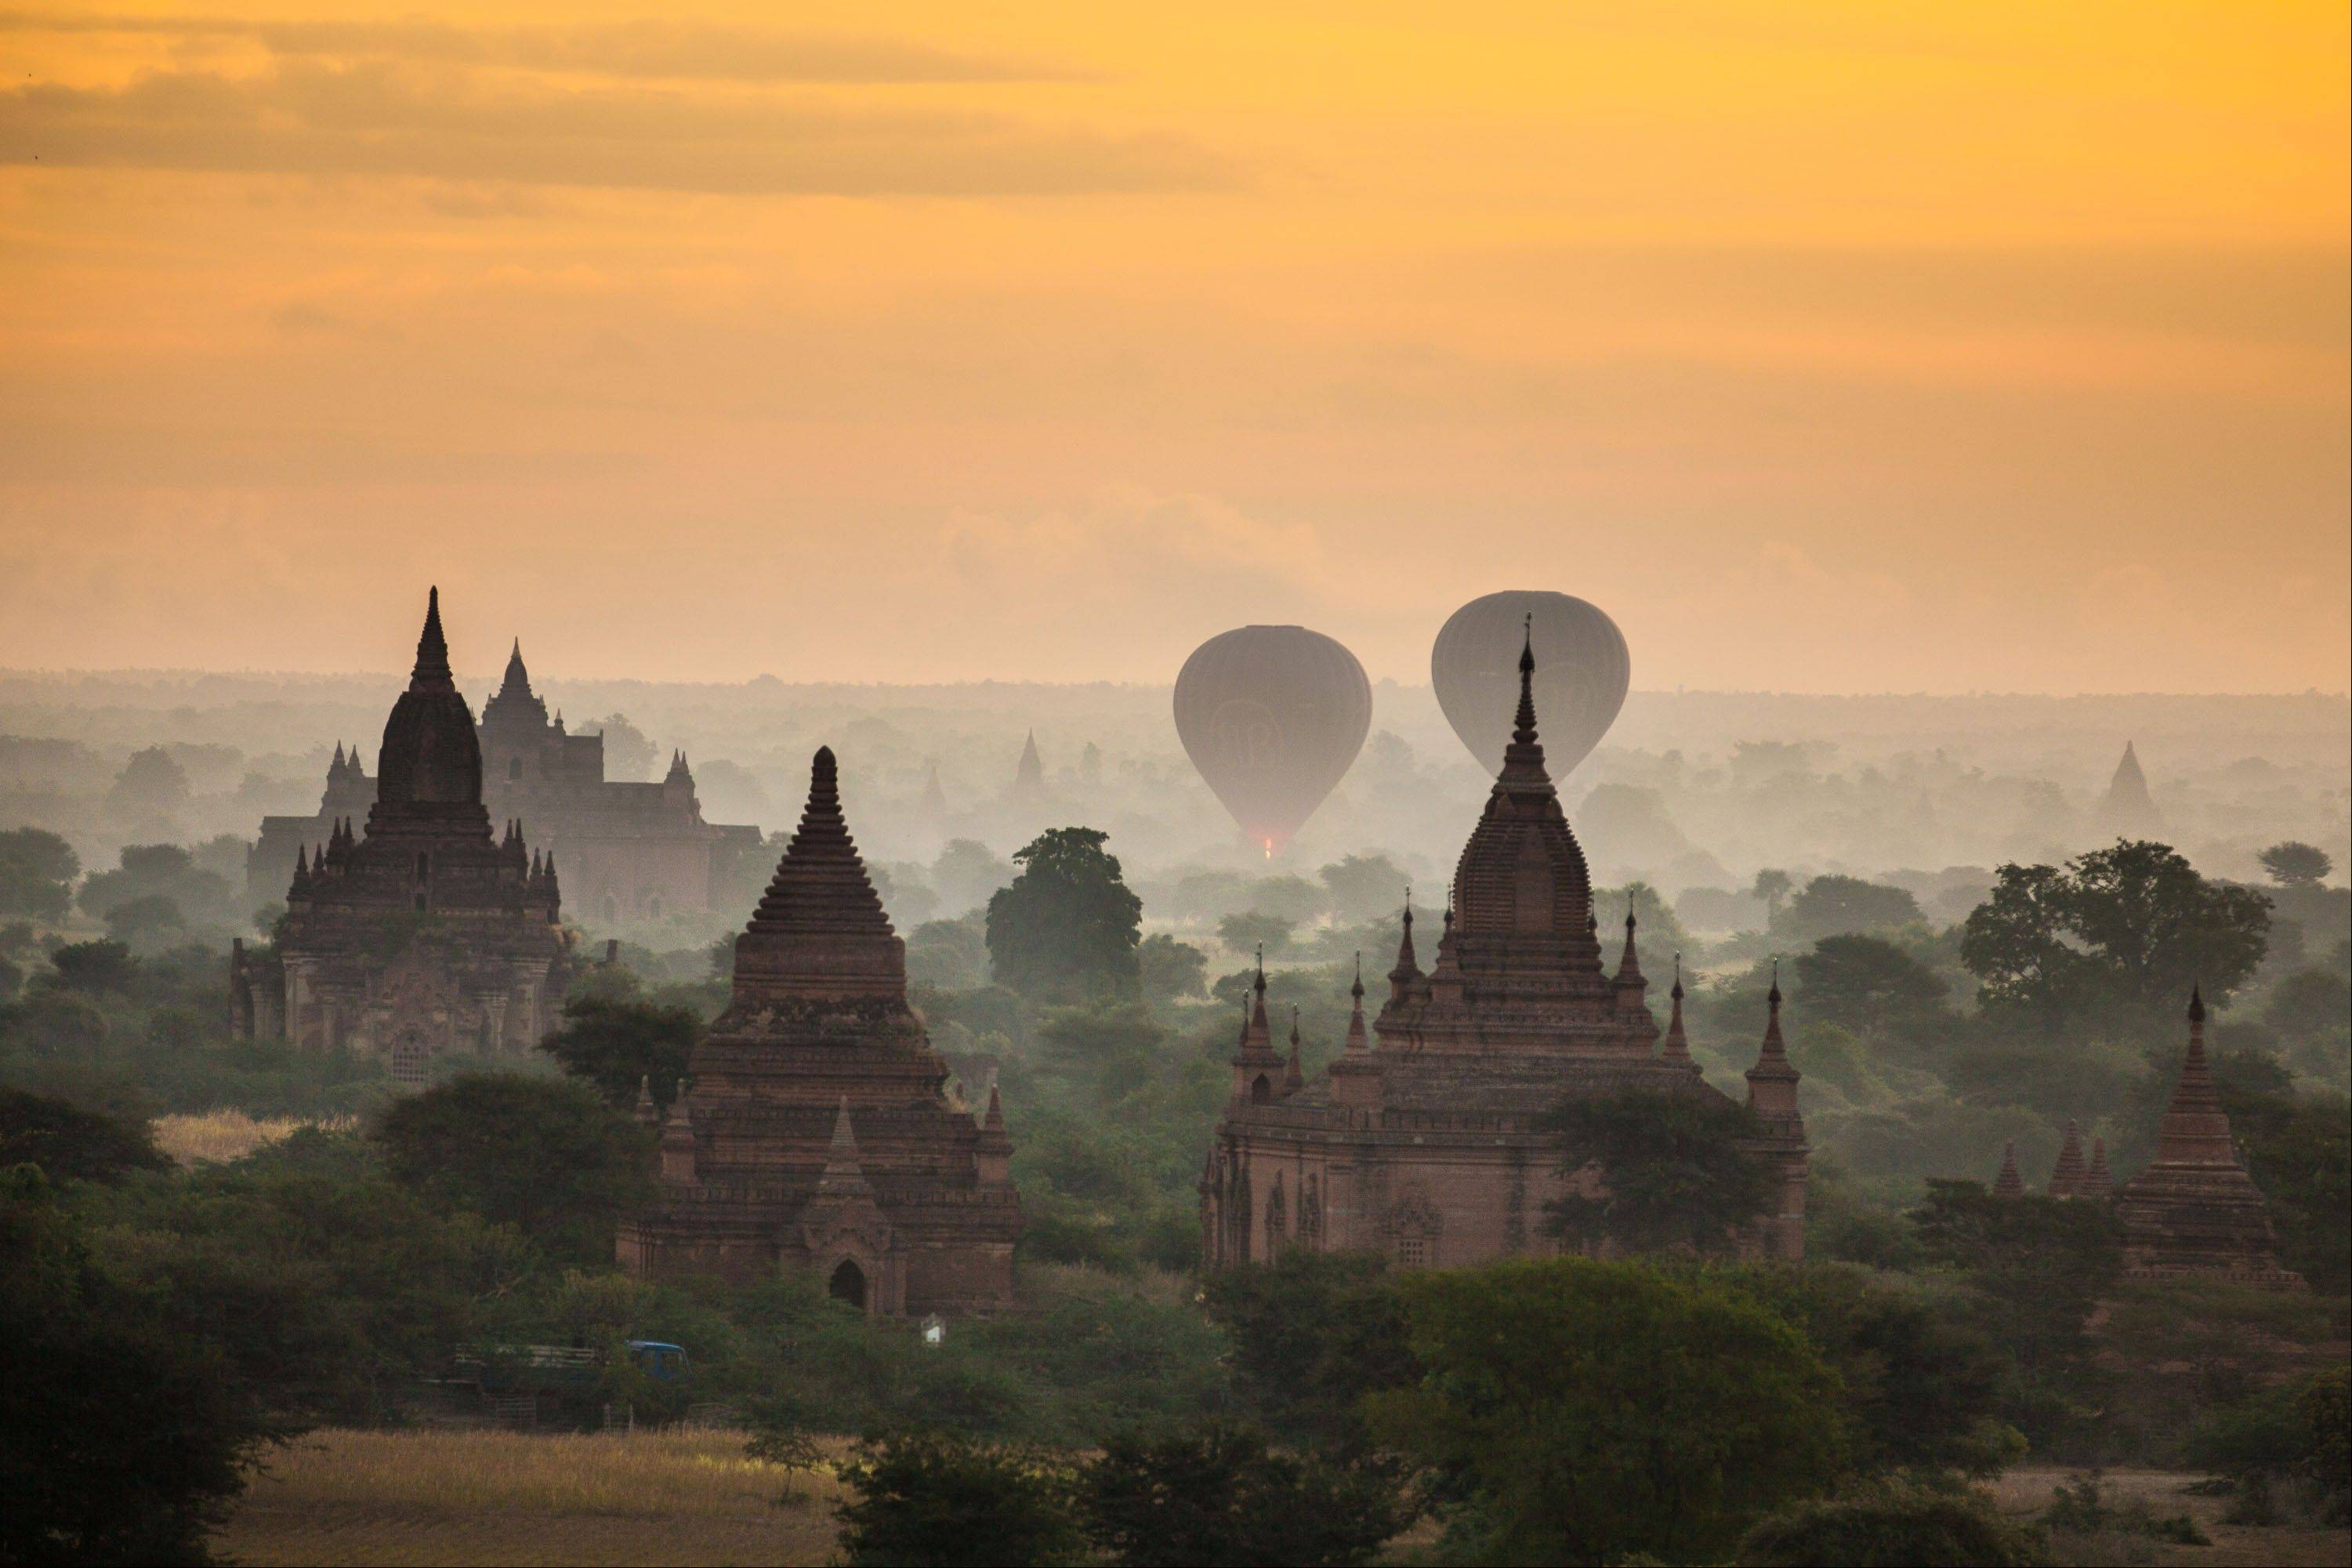 Agriculture and a few of the more than 2,200 Pagodas found in Bagan, Myanmar.